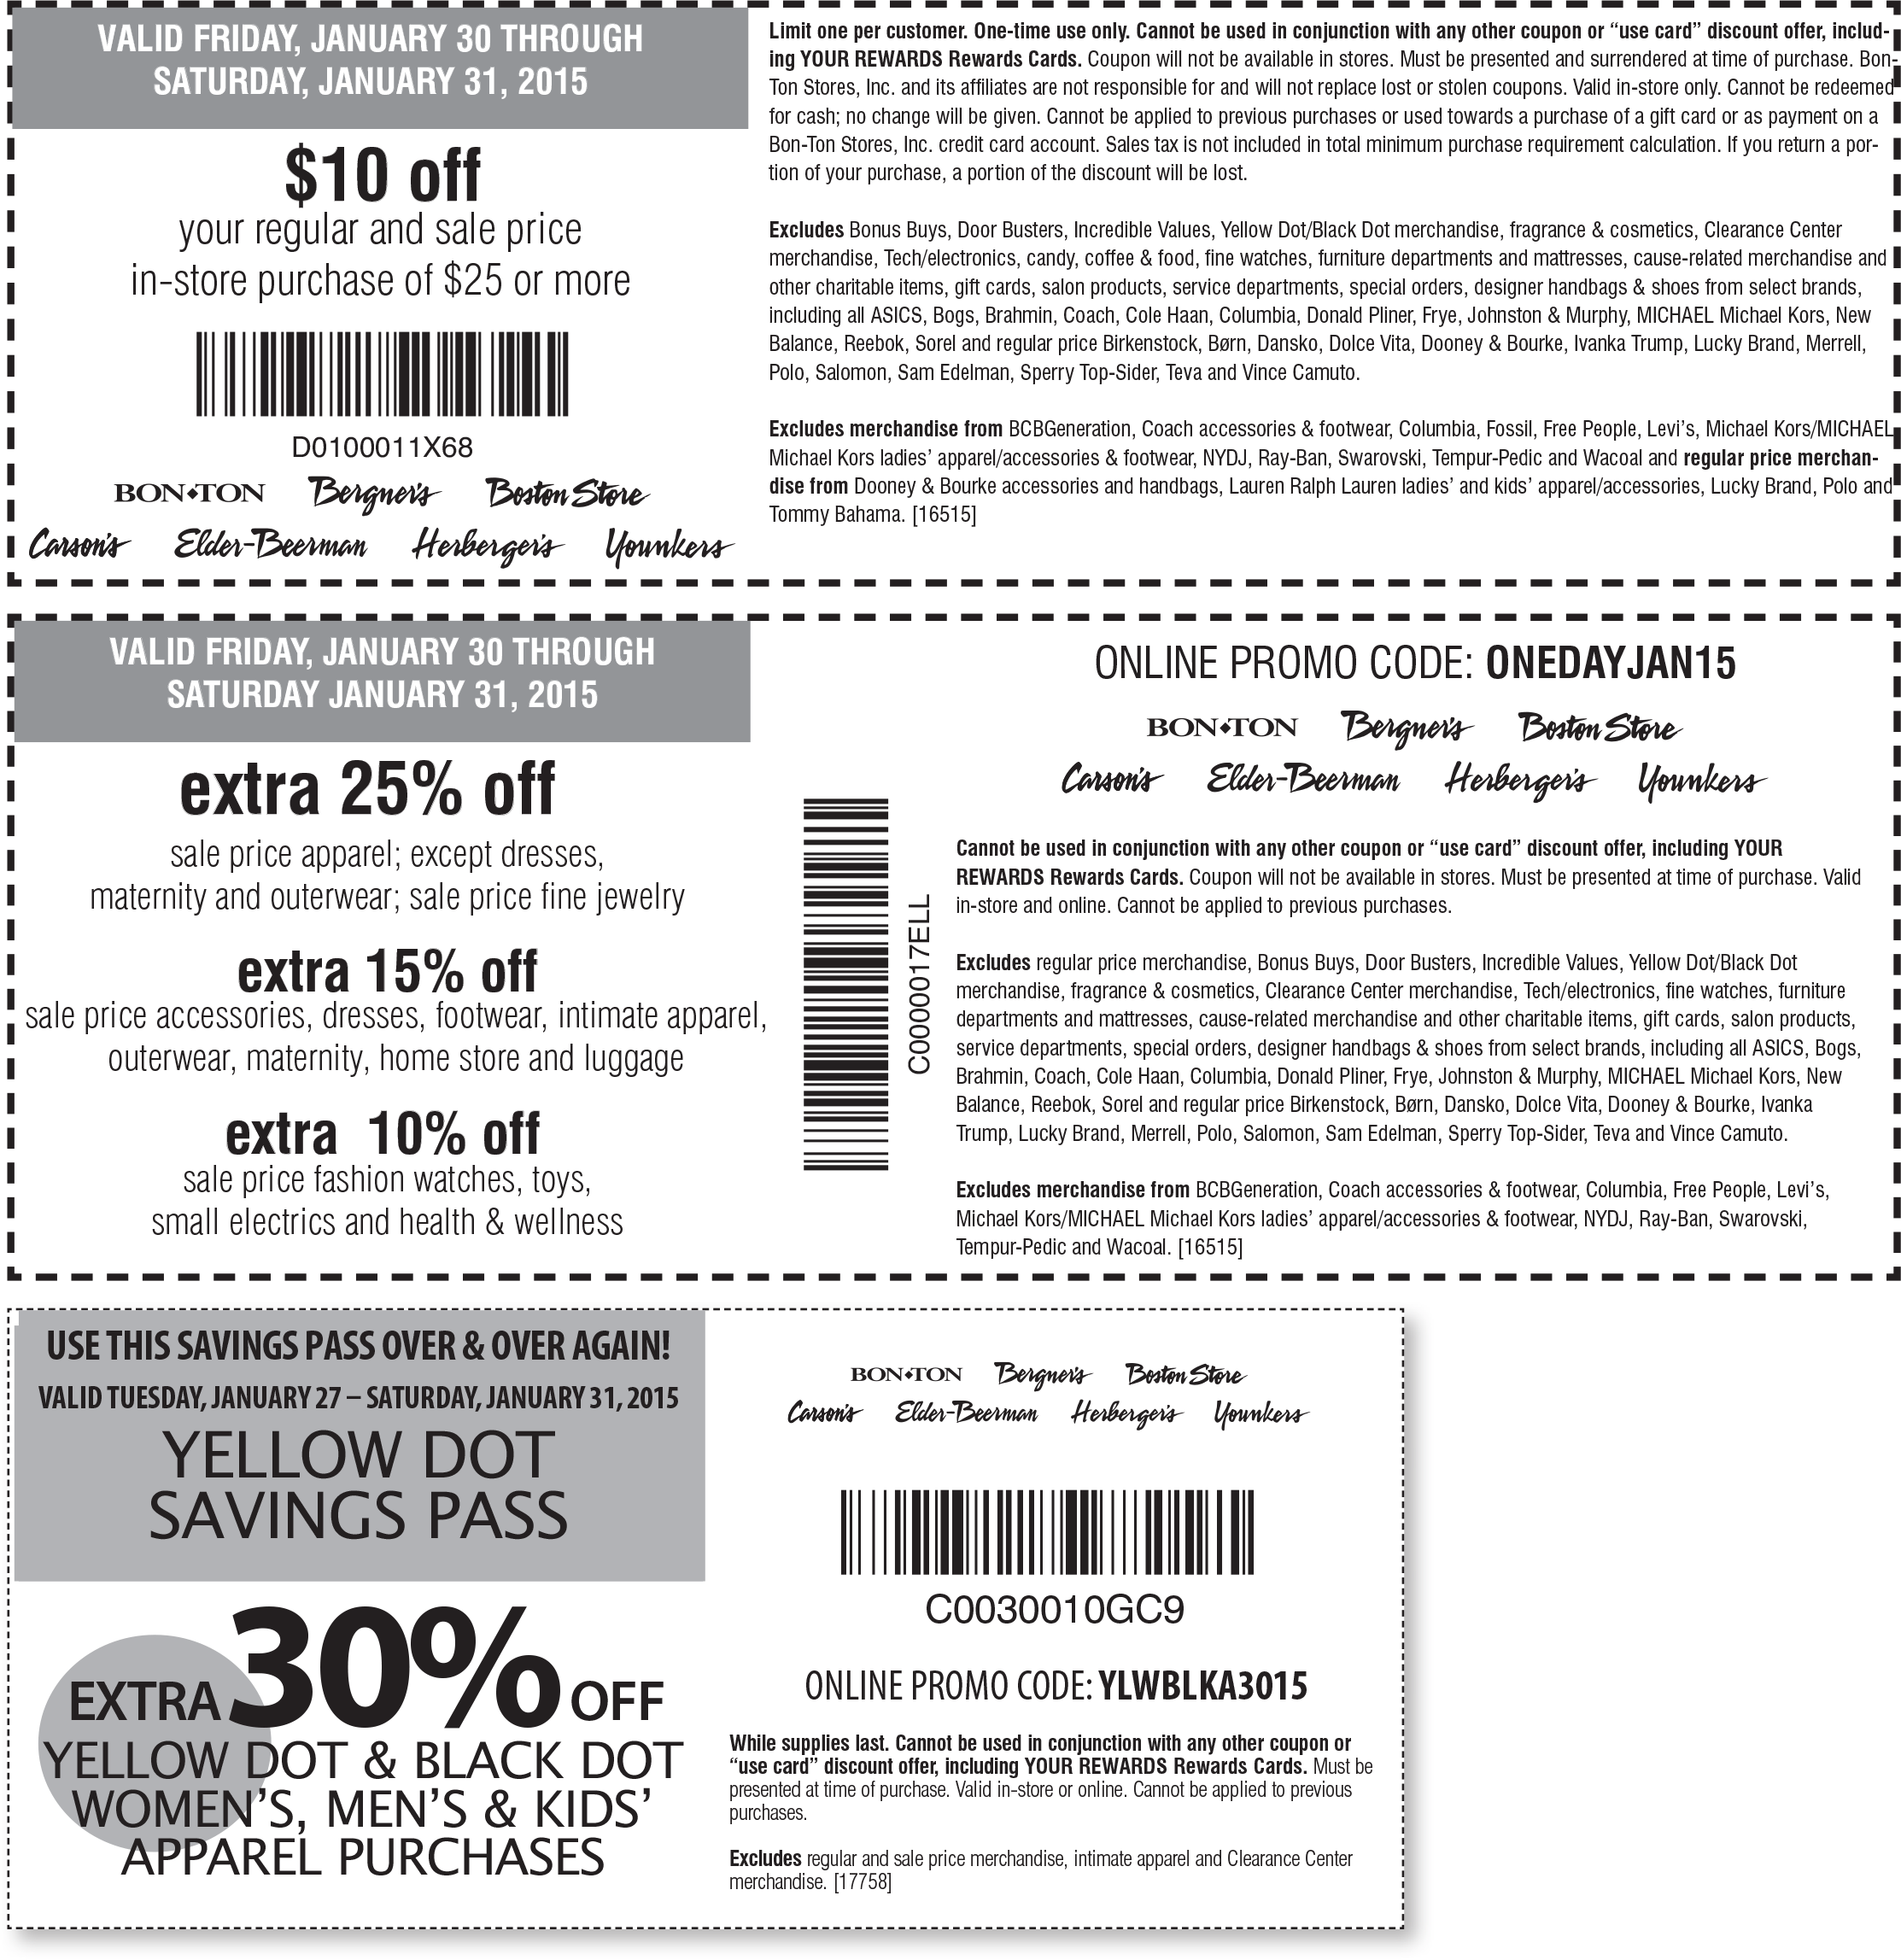 68 coupons, codes and deals